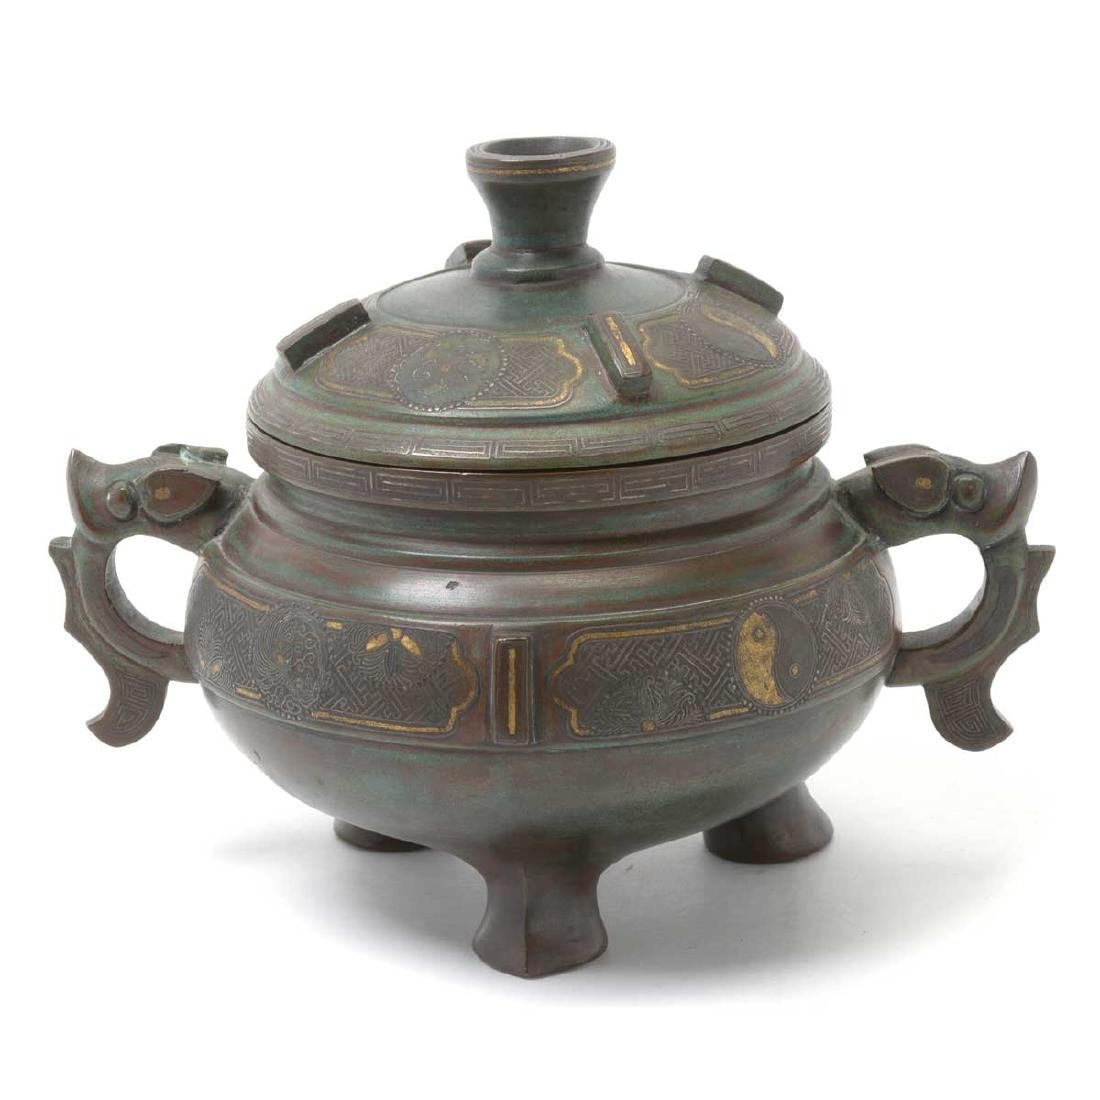 Japanese Tripod Censer with Silver Inlay, Meiji Period